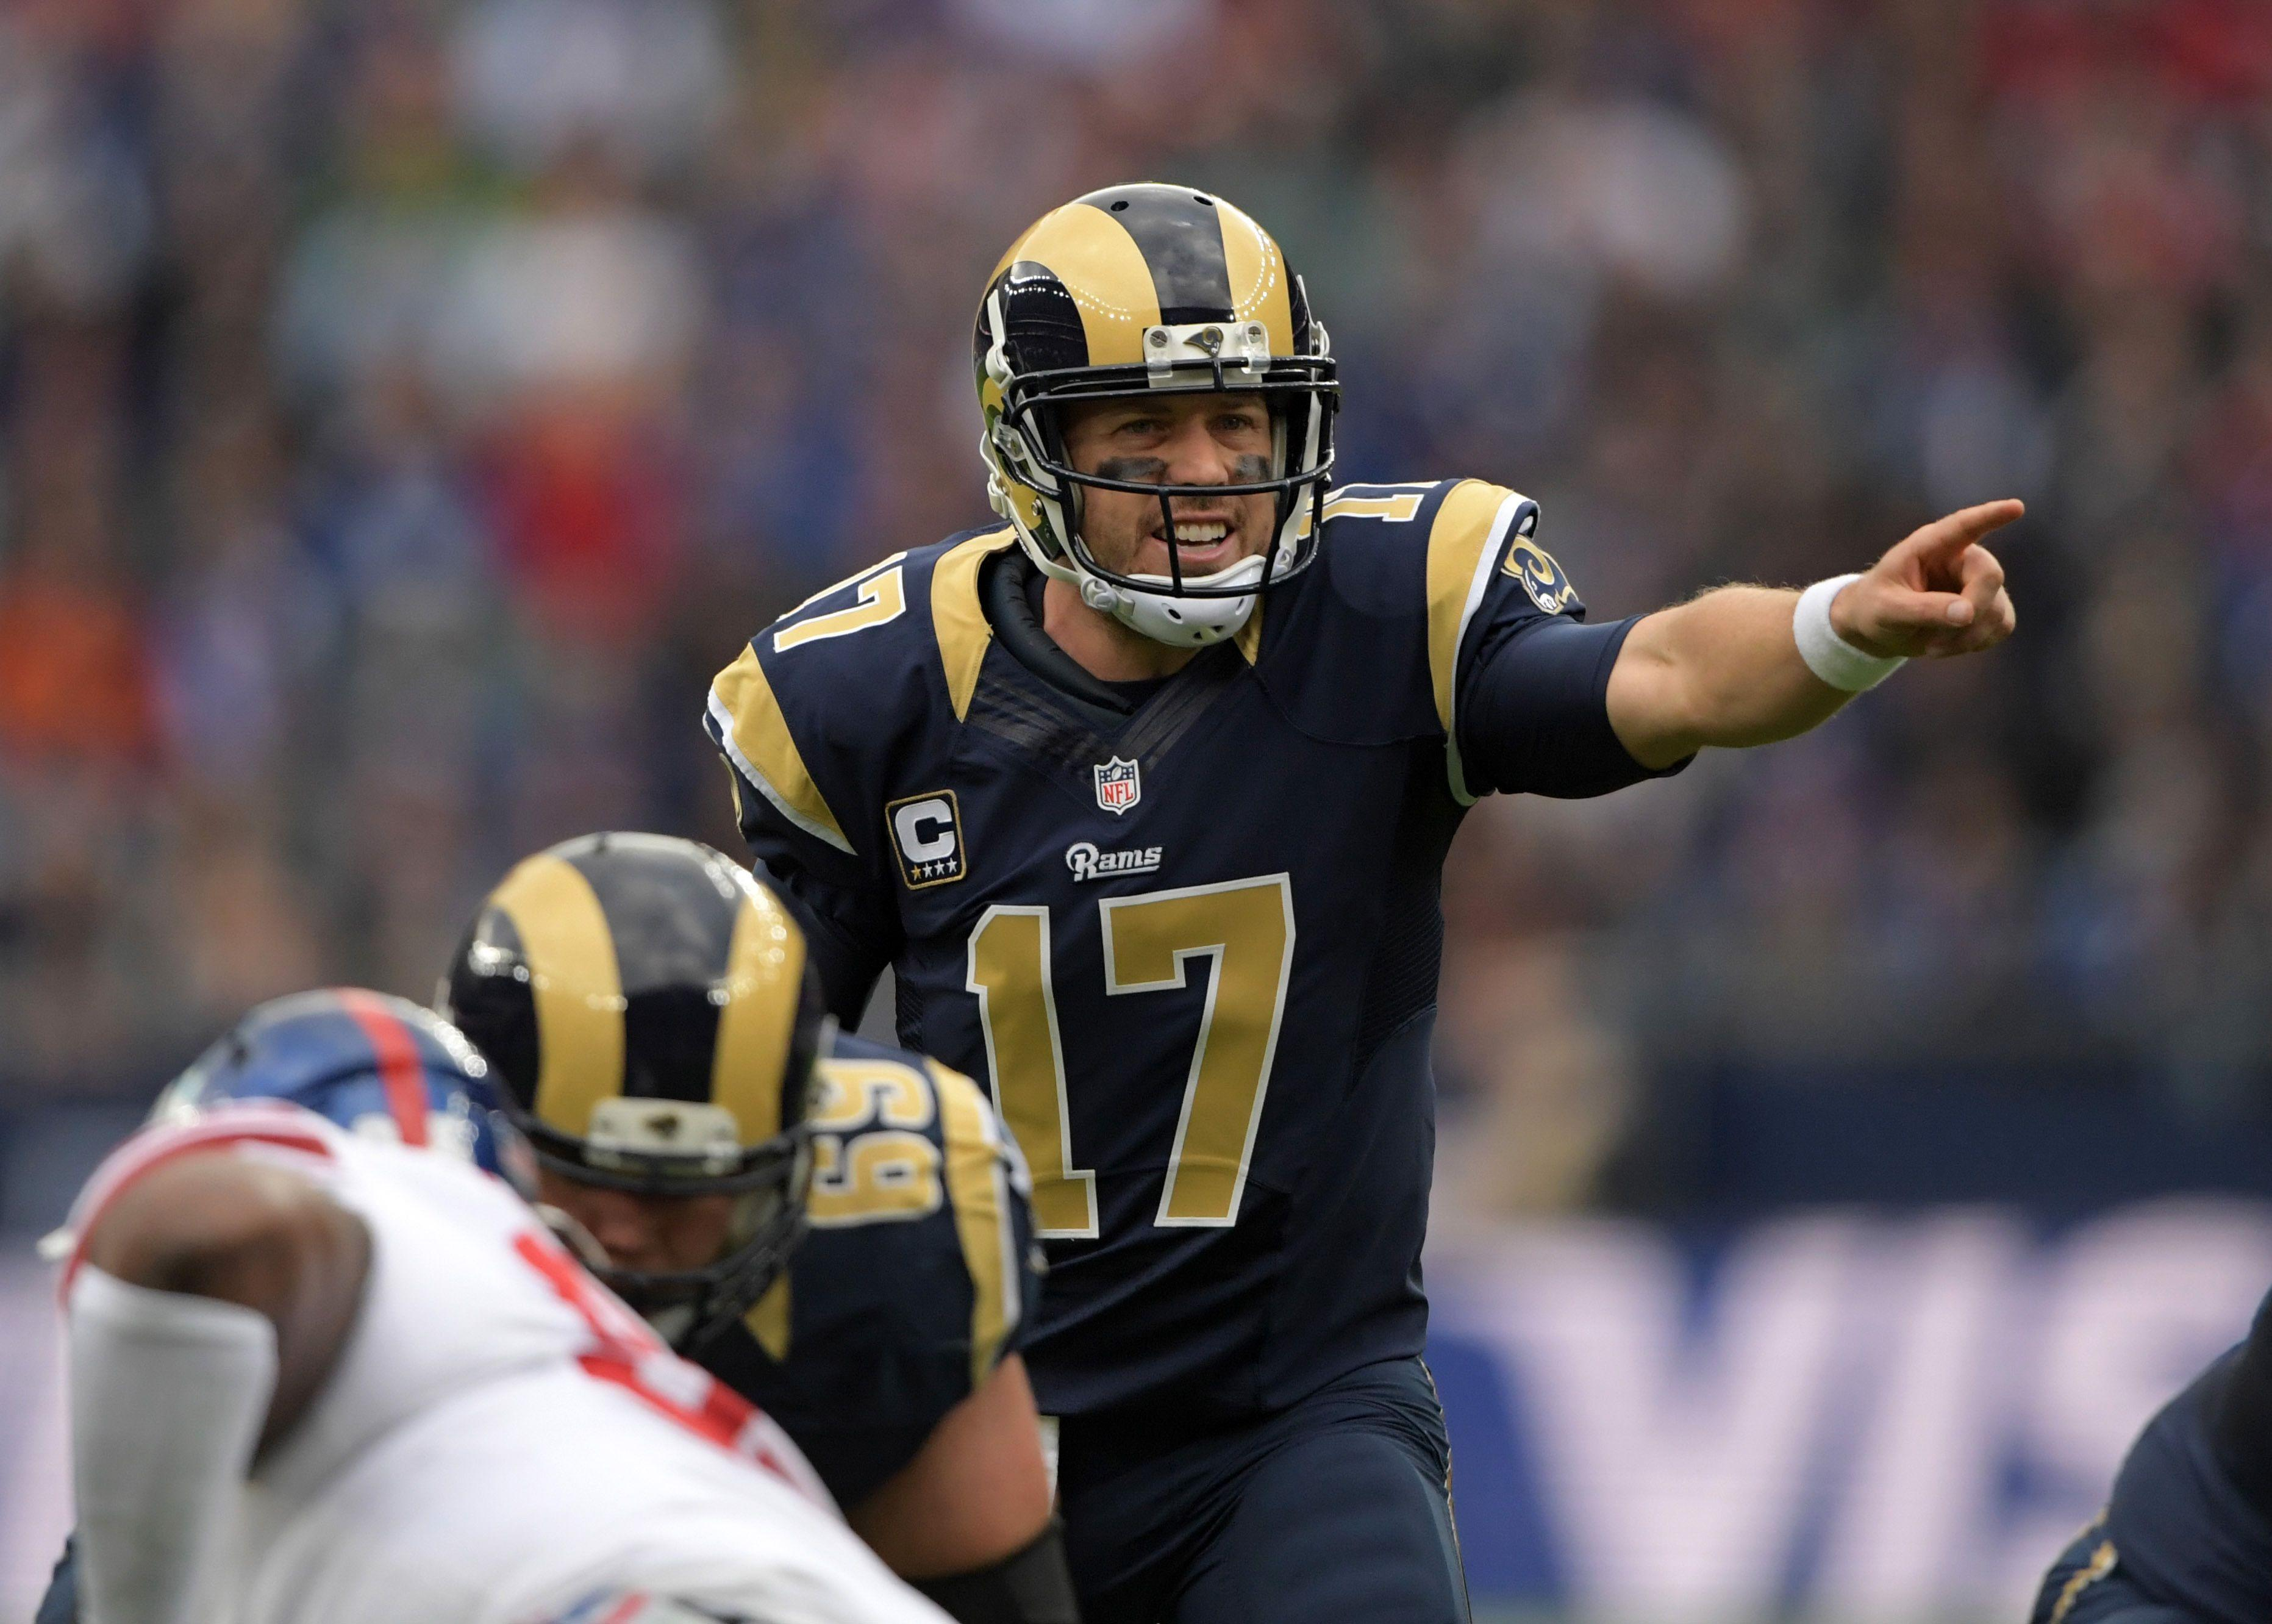 Report: Vikings adding Case Keenum to quarterback group